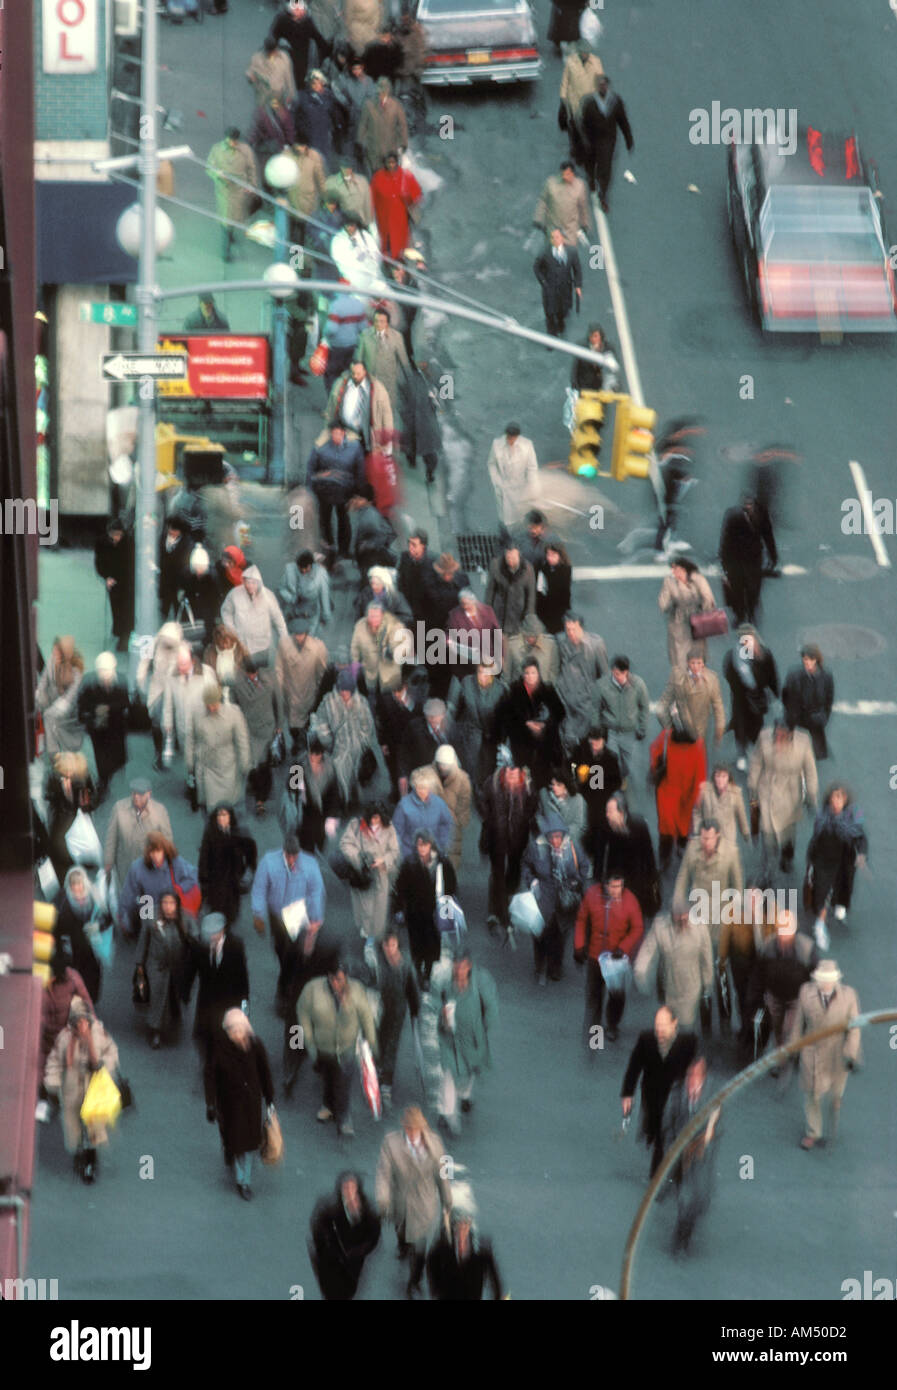 crowded city sidewalks and streets rush hour - Stock Image